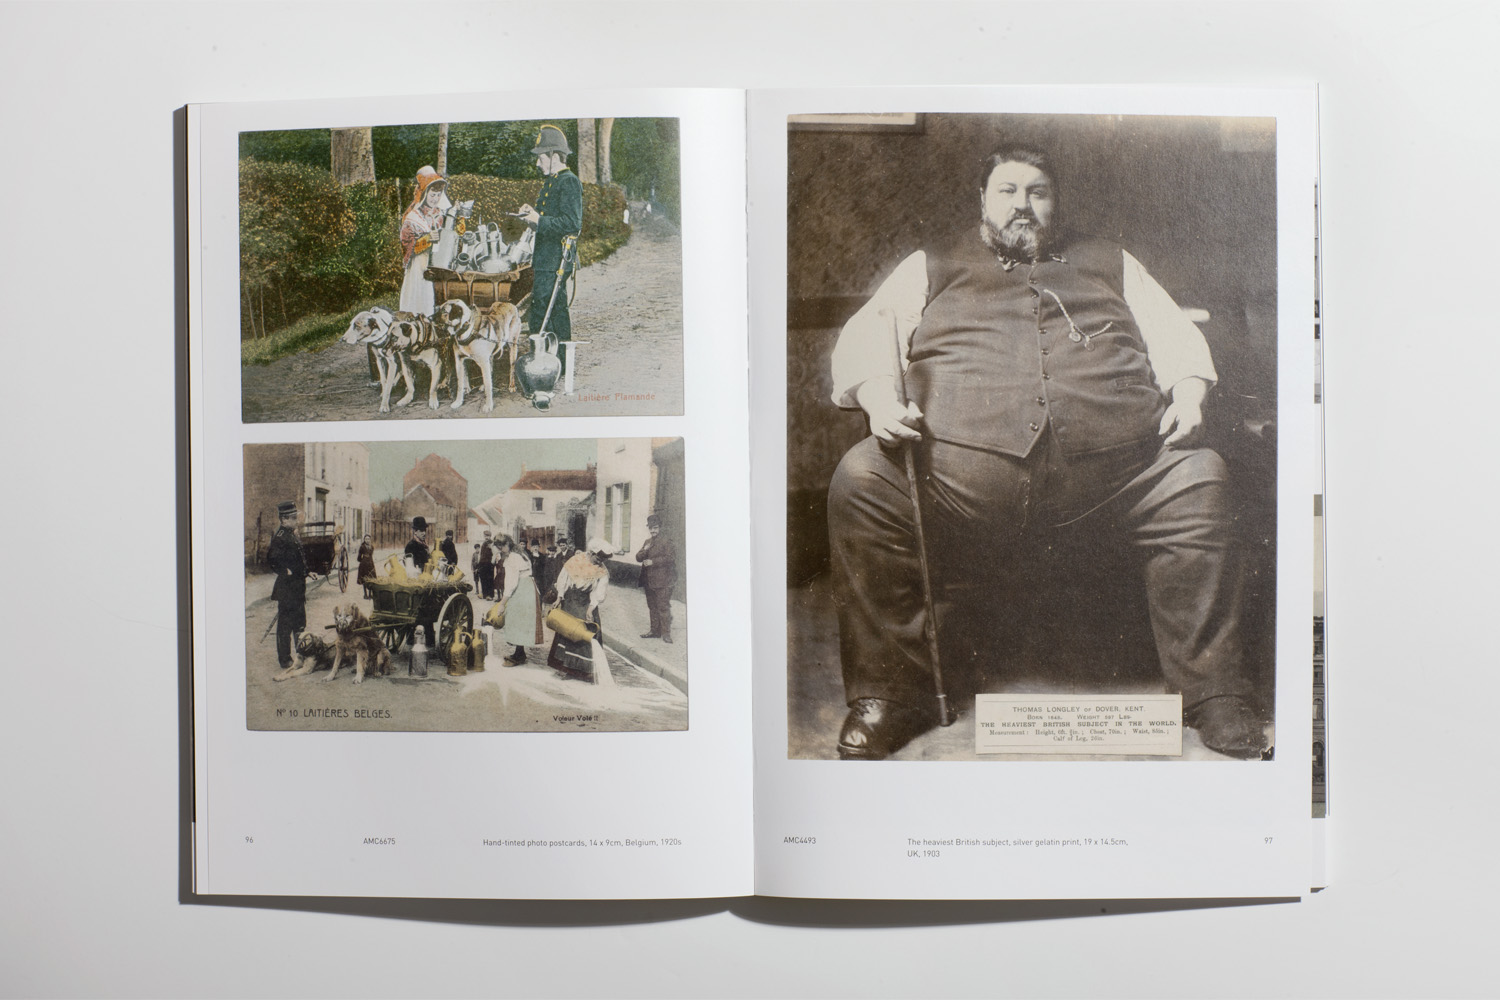 A spread from Amc²: (left) Hand-tinted photo postcards, Belgium, 1920s.                                (right) The heaviest British subject, silver gelatin print, UK, 1903.